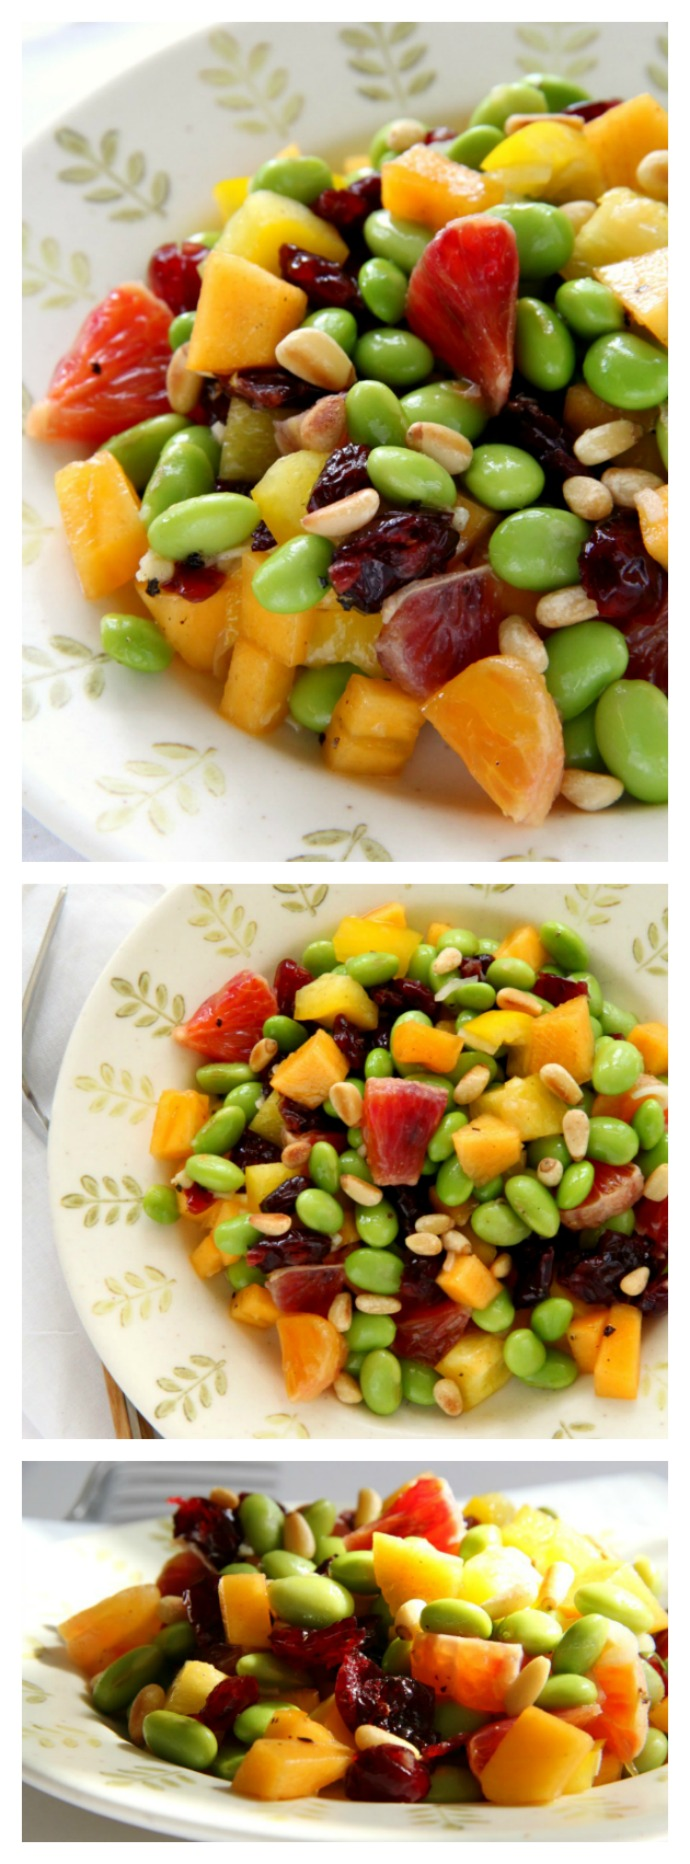 Colorful vegan, gluten-free salad with edamame, persimmon, peppers, pine nuts and blood orange. Recipe-on-shockinglydelicious-com